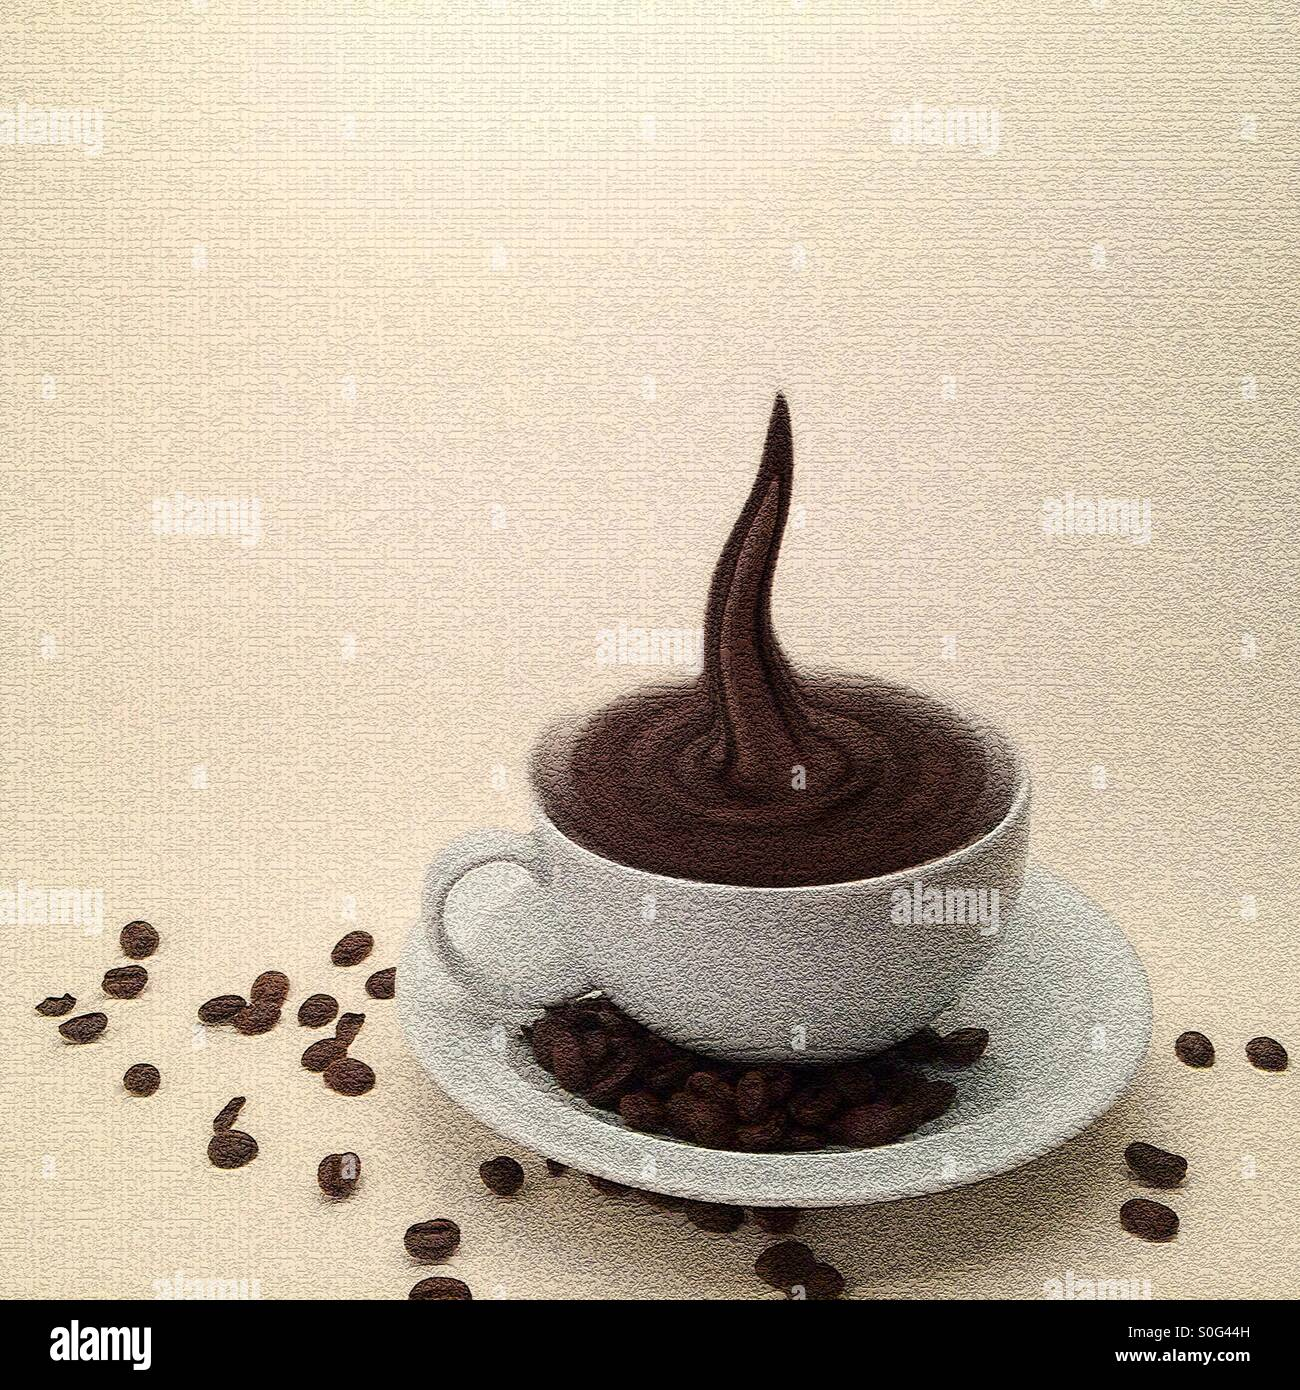 Storm in a coffee cup, manipulated image showing cup and saucer filled swirling coffee including a coffee spout - Stock Image